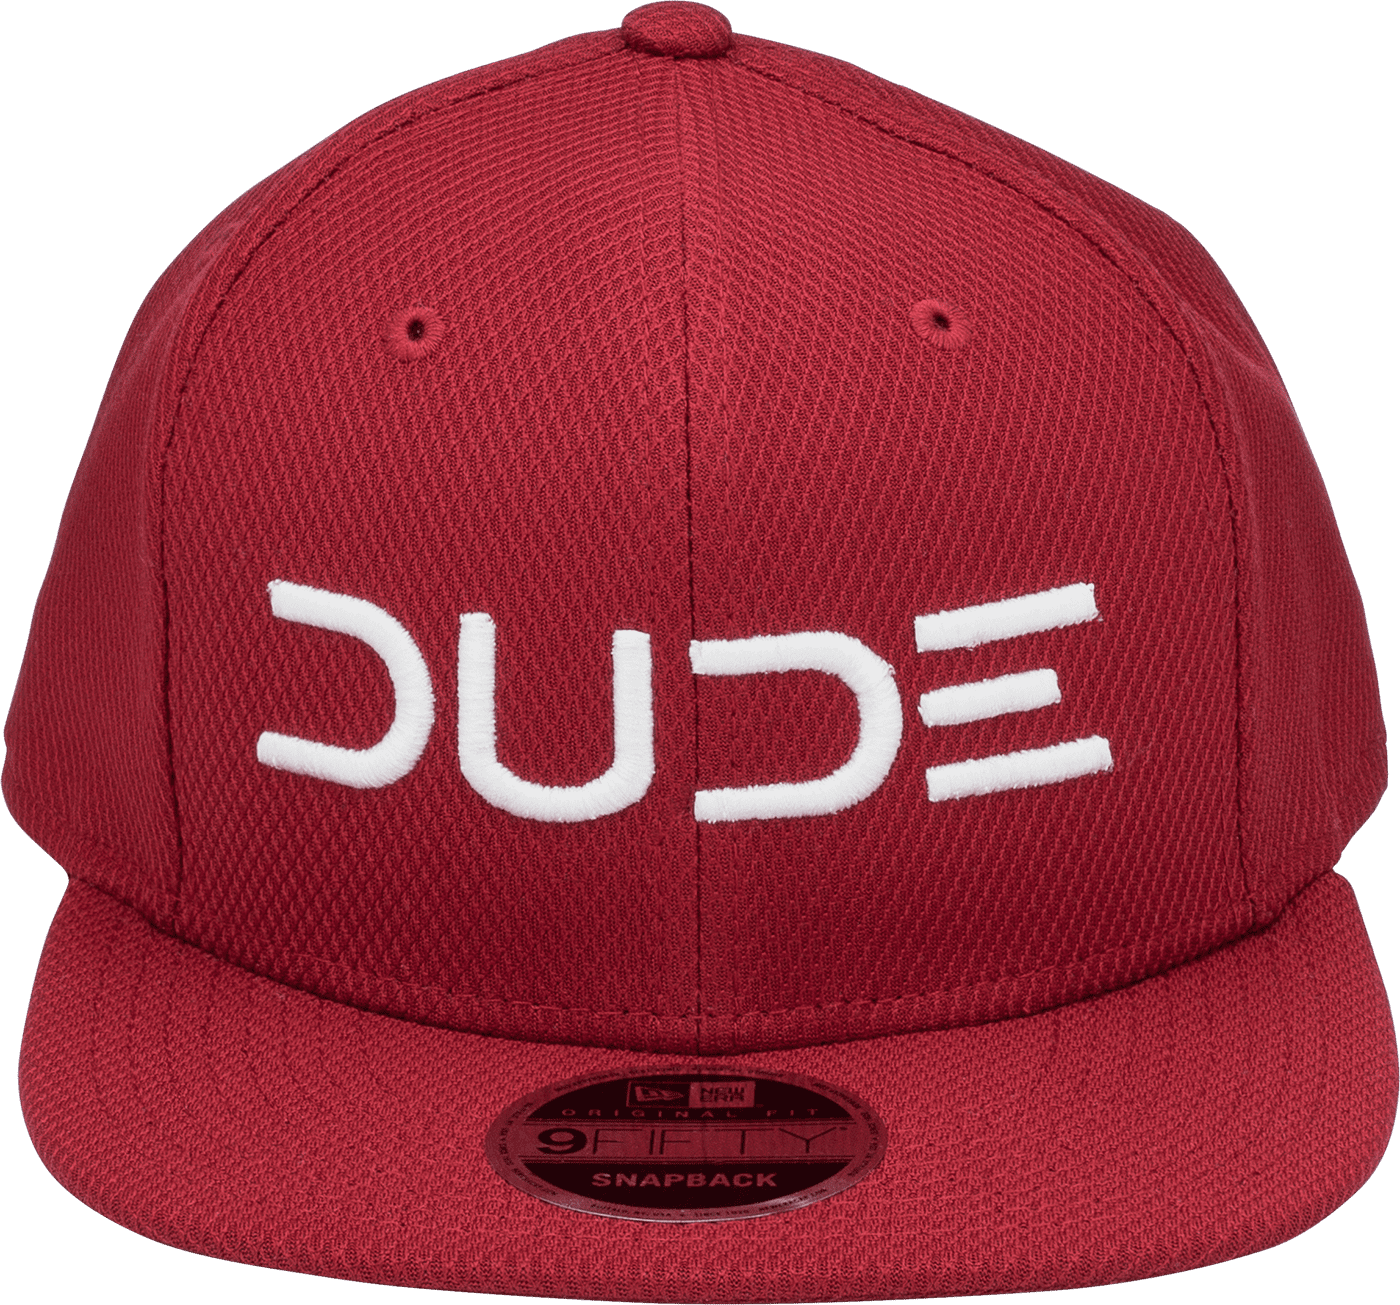 Crimson & White, Mesh Snapback - DudeProducts